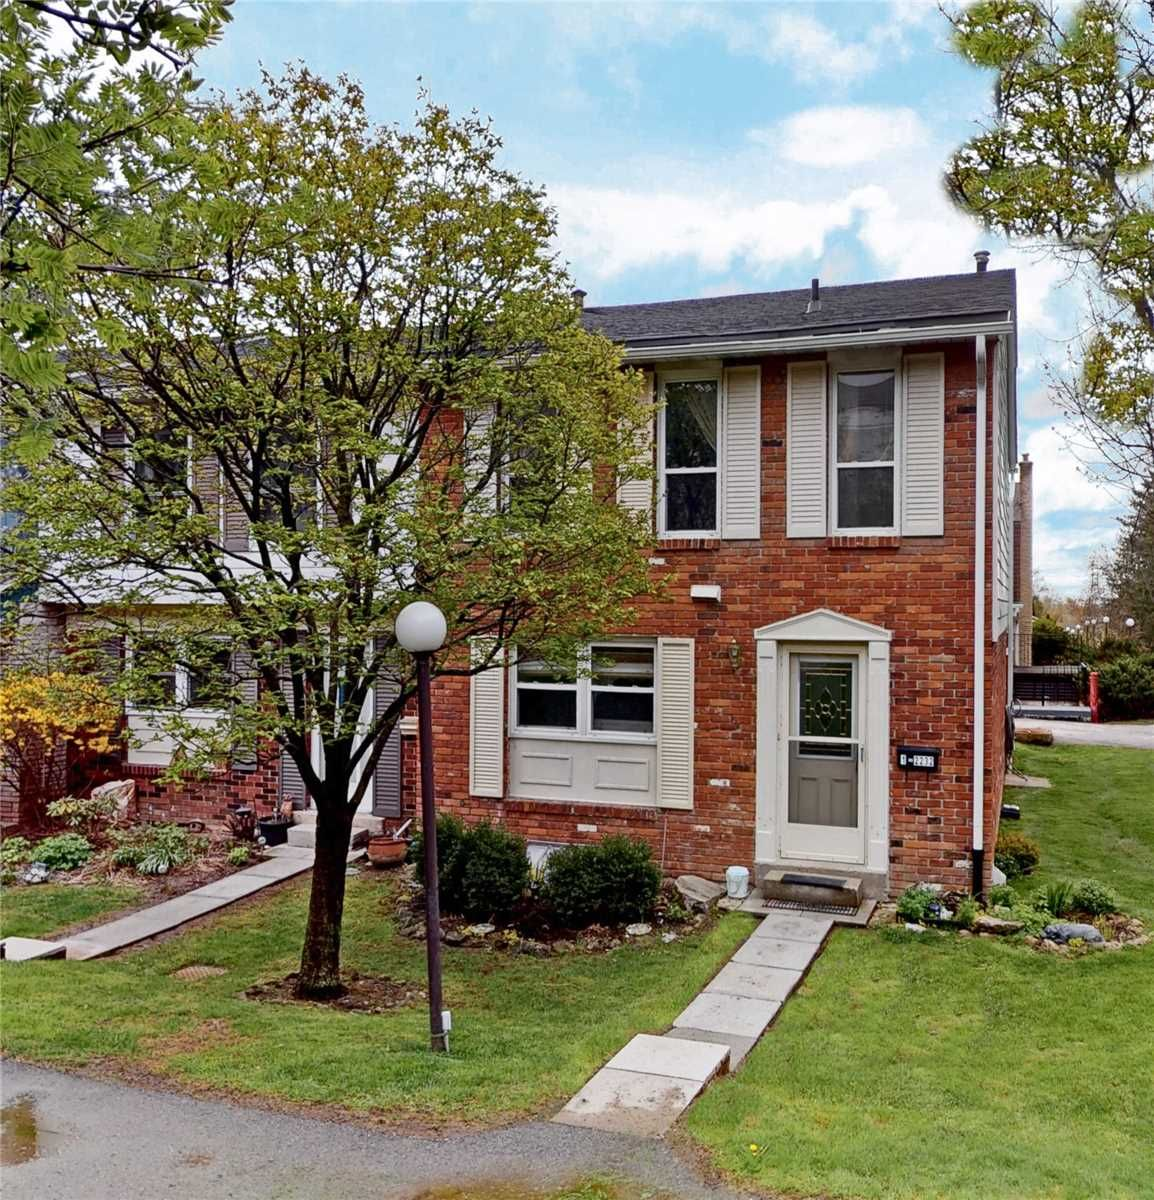 2232 Upper Middle Rd, unit 2 for sale in Brant Hills | Nelson - image #1